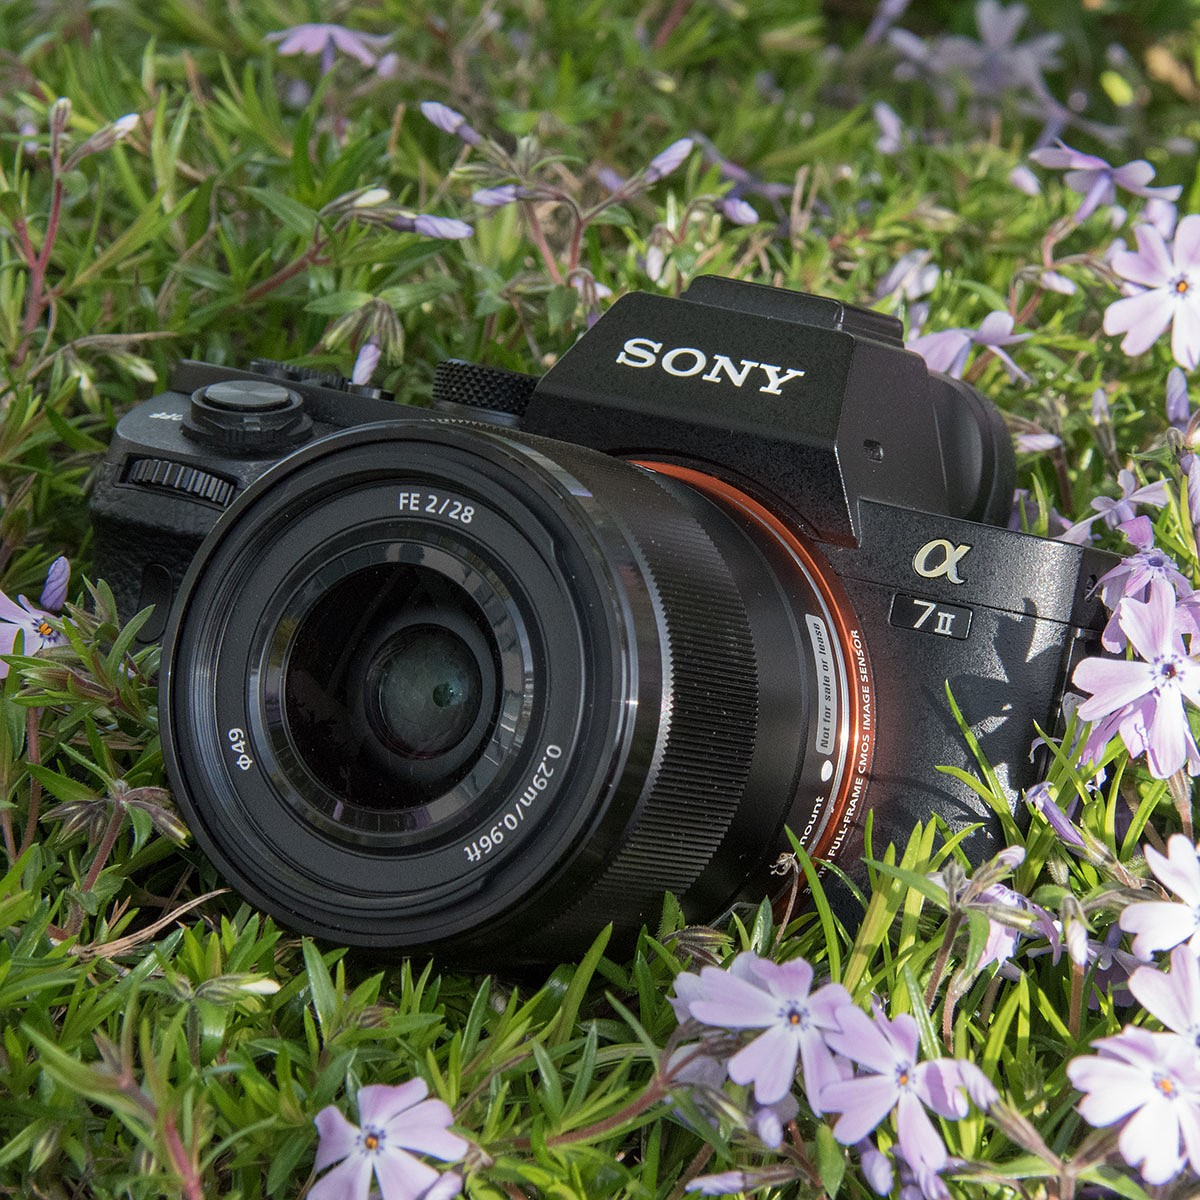 Sony A7 Ii Gains Faster Focus For Adapted Lenses And Uncompressed The Sensors I Used Came Out Of Shelf But An Adaptation Was Needed Raw Digital Photography Review